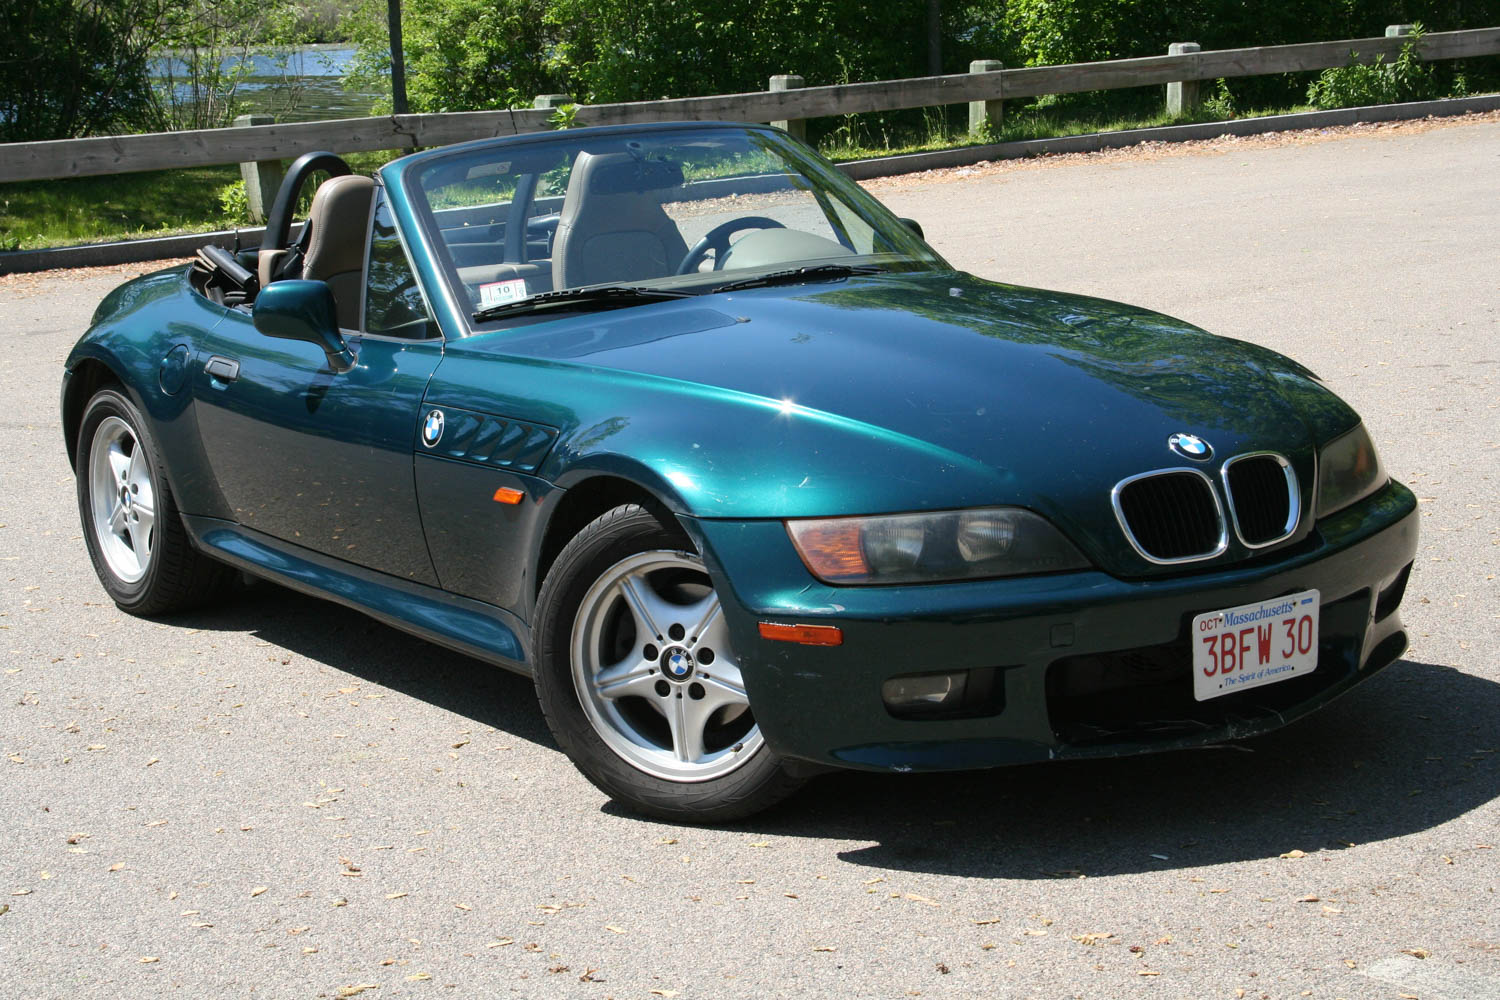 The Z3's lines, particularly the bulbous nose, never left me mumbling in adoration, but it's a great car to own and drive.